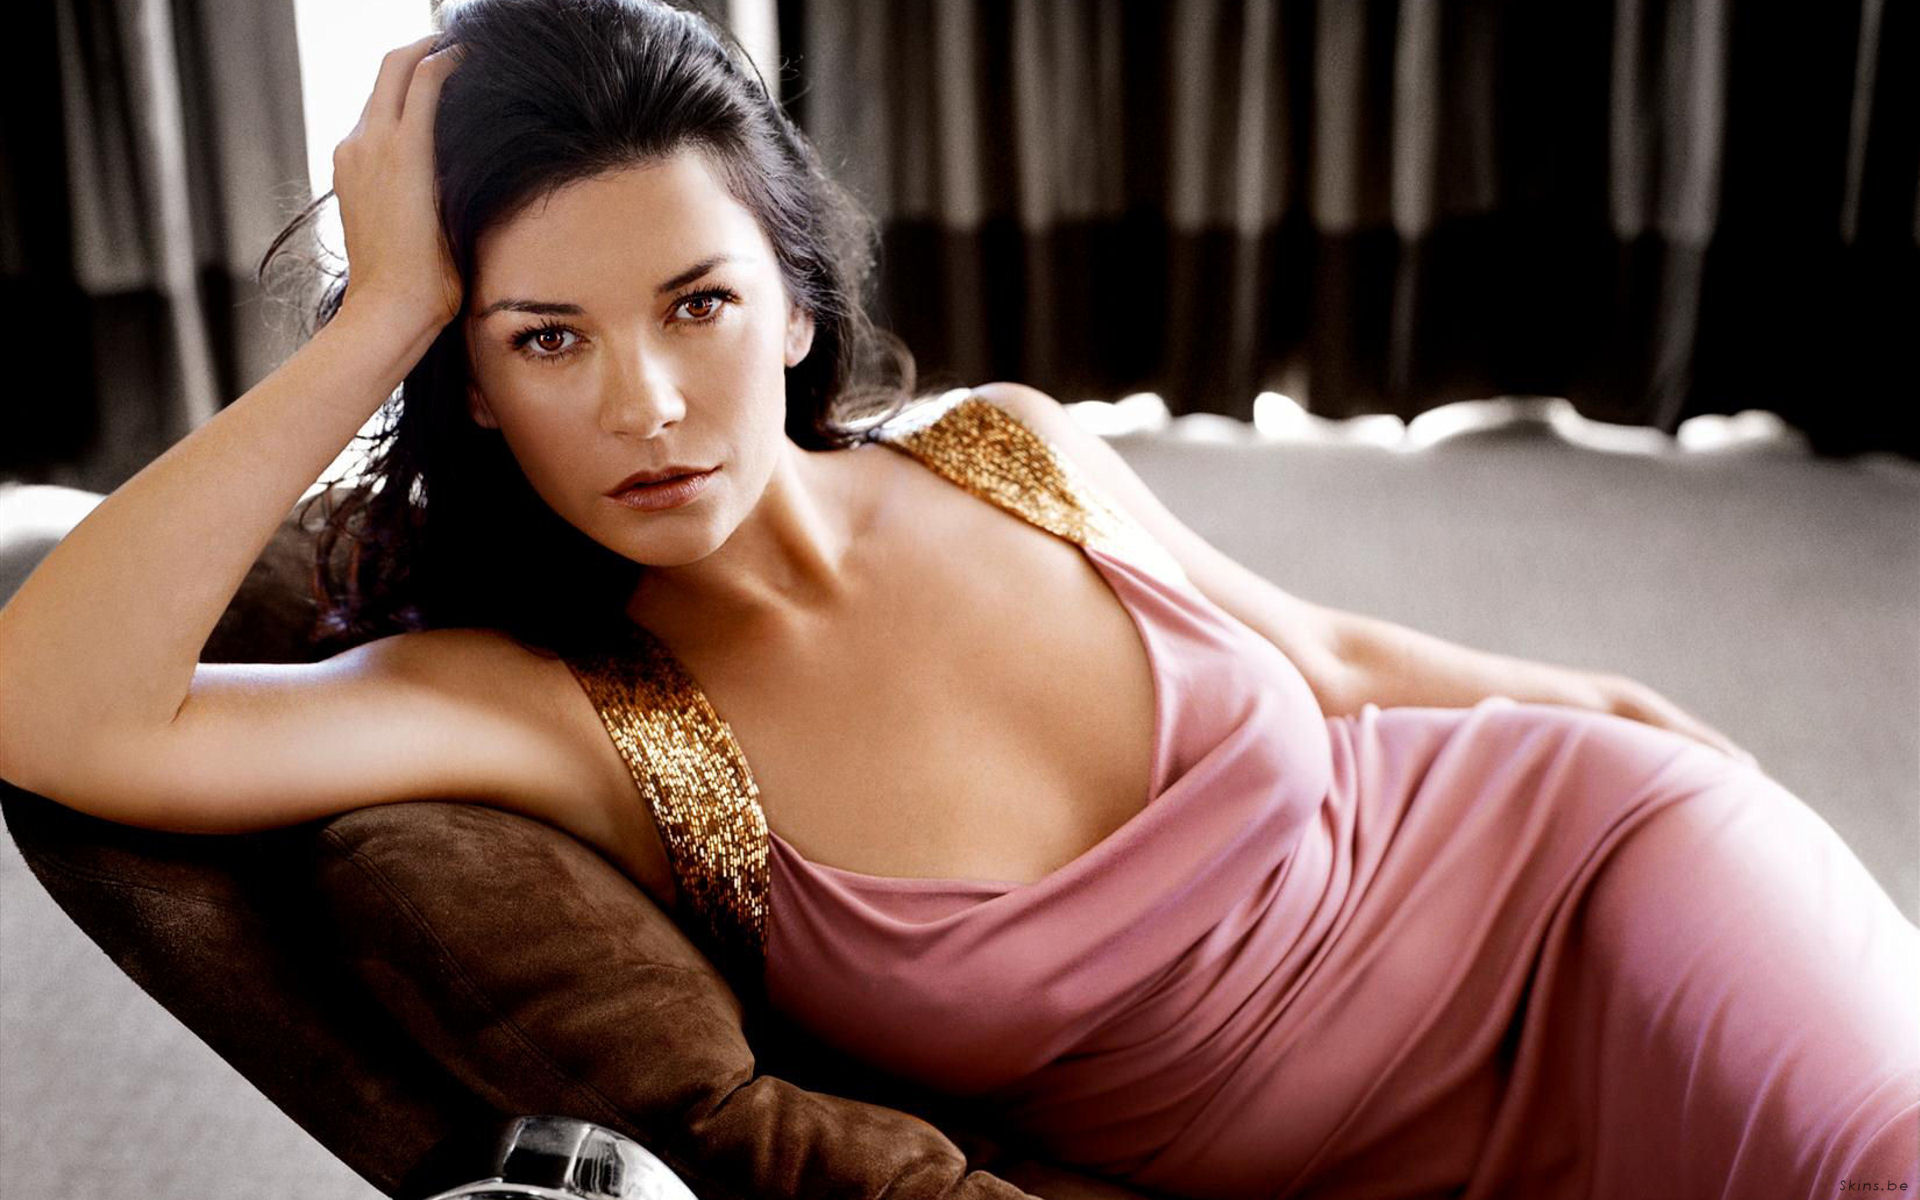 10 Stunning Celebrity Favourite Vacation Spots - Mallorca, Spain - Catherine Zeta-Jones